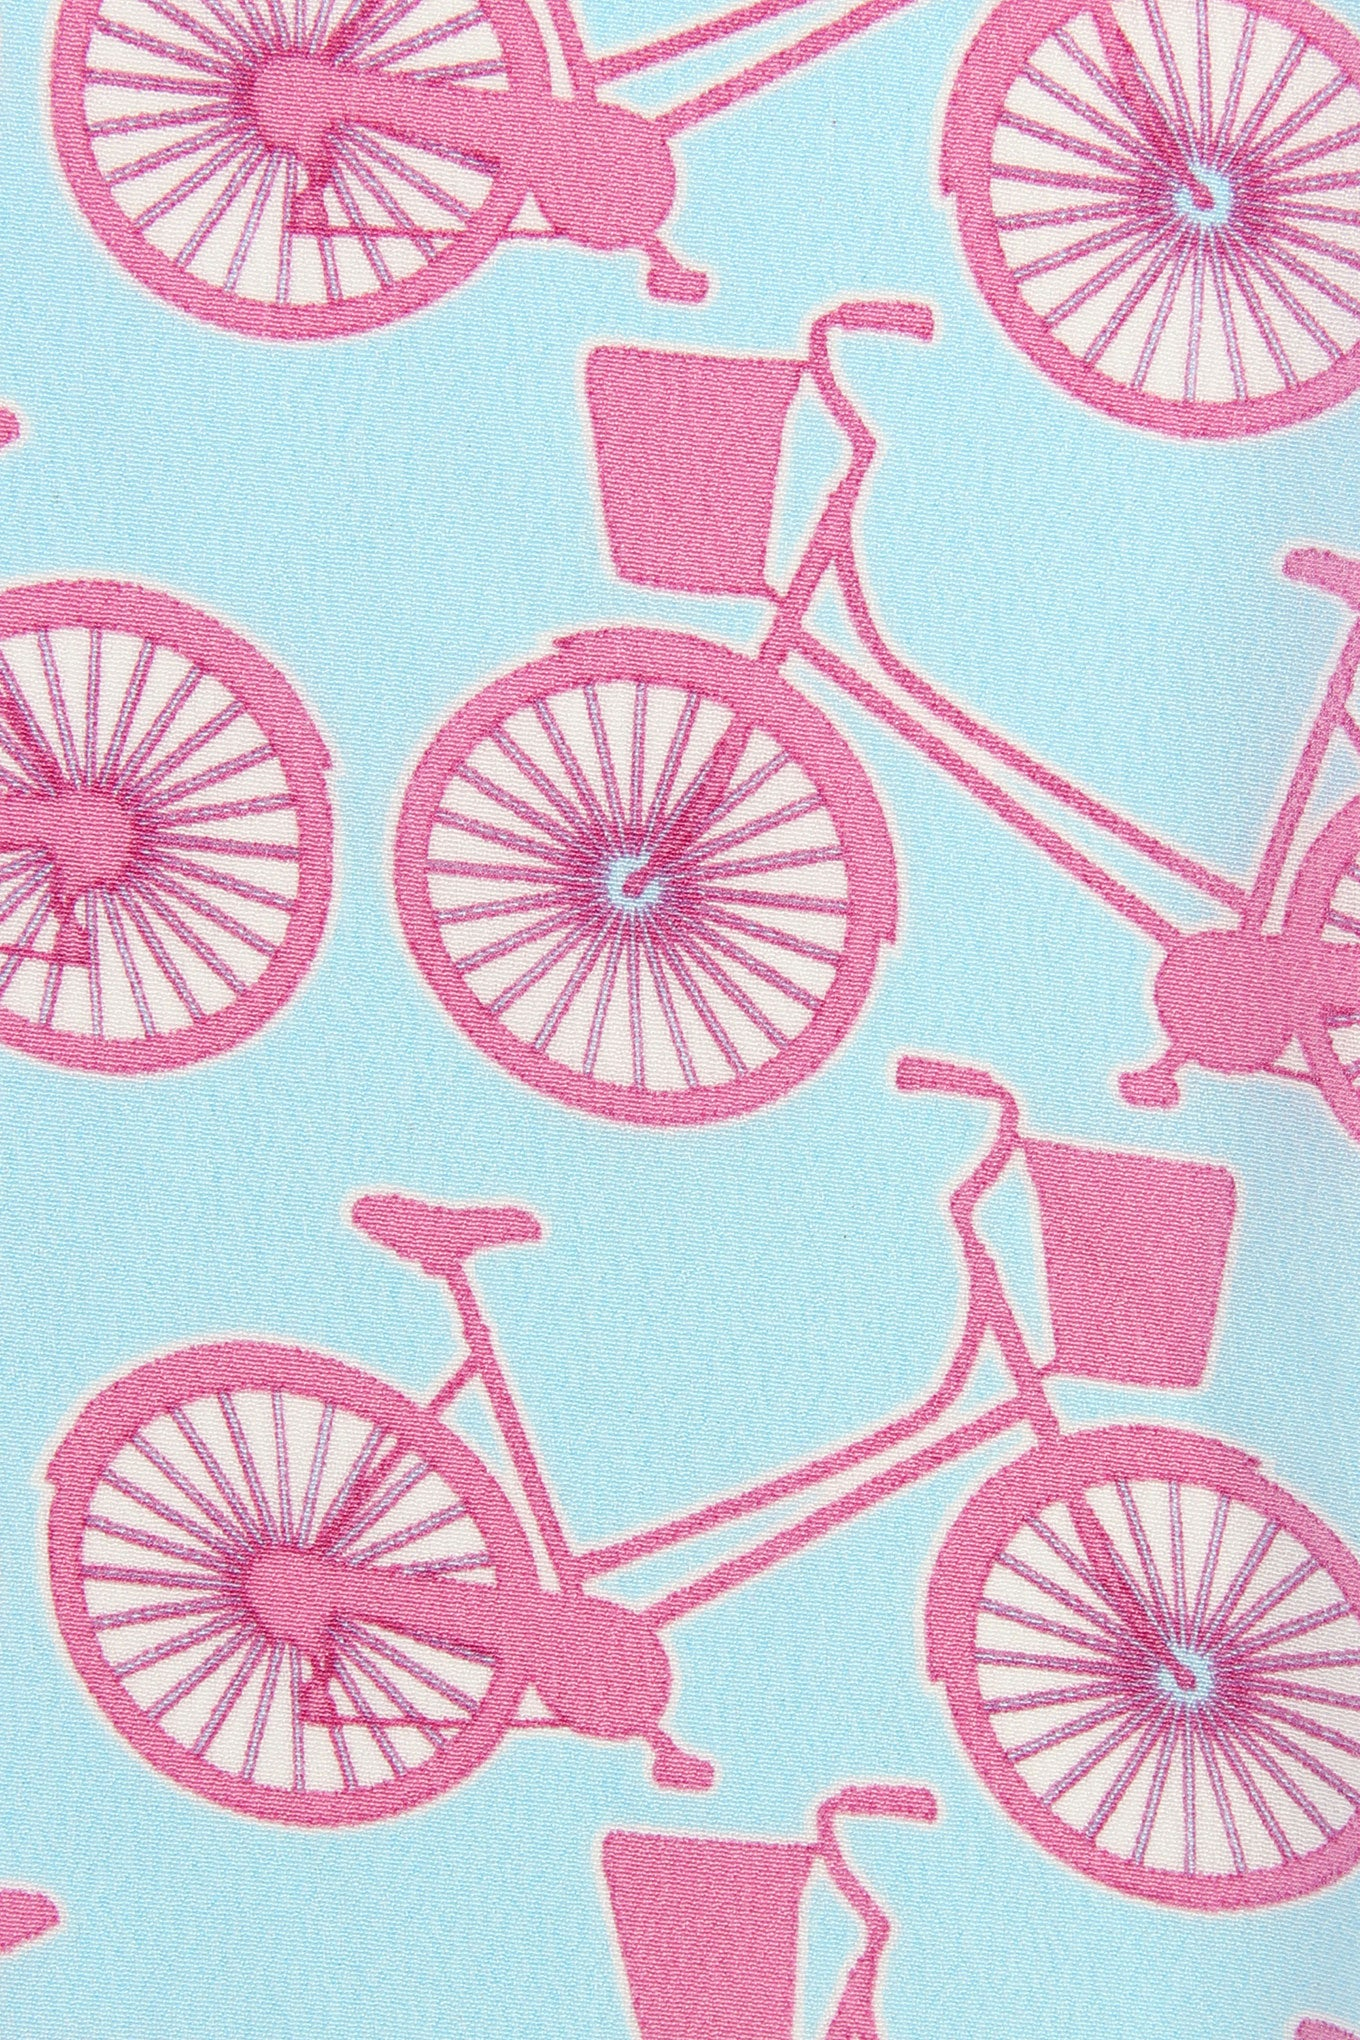 Lotty B Silk Crepe-de-Chine Long Scarf BICYCLE REPEAT - PINK swatch